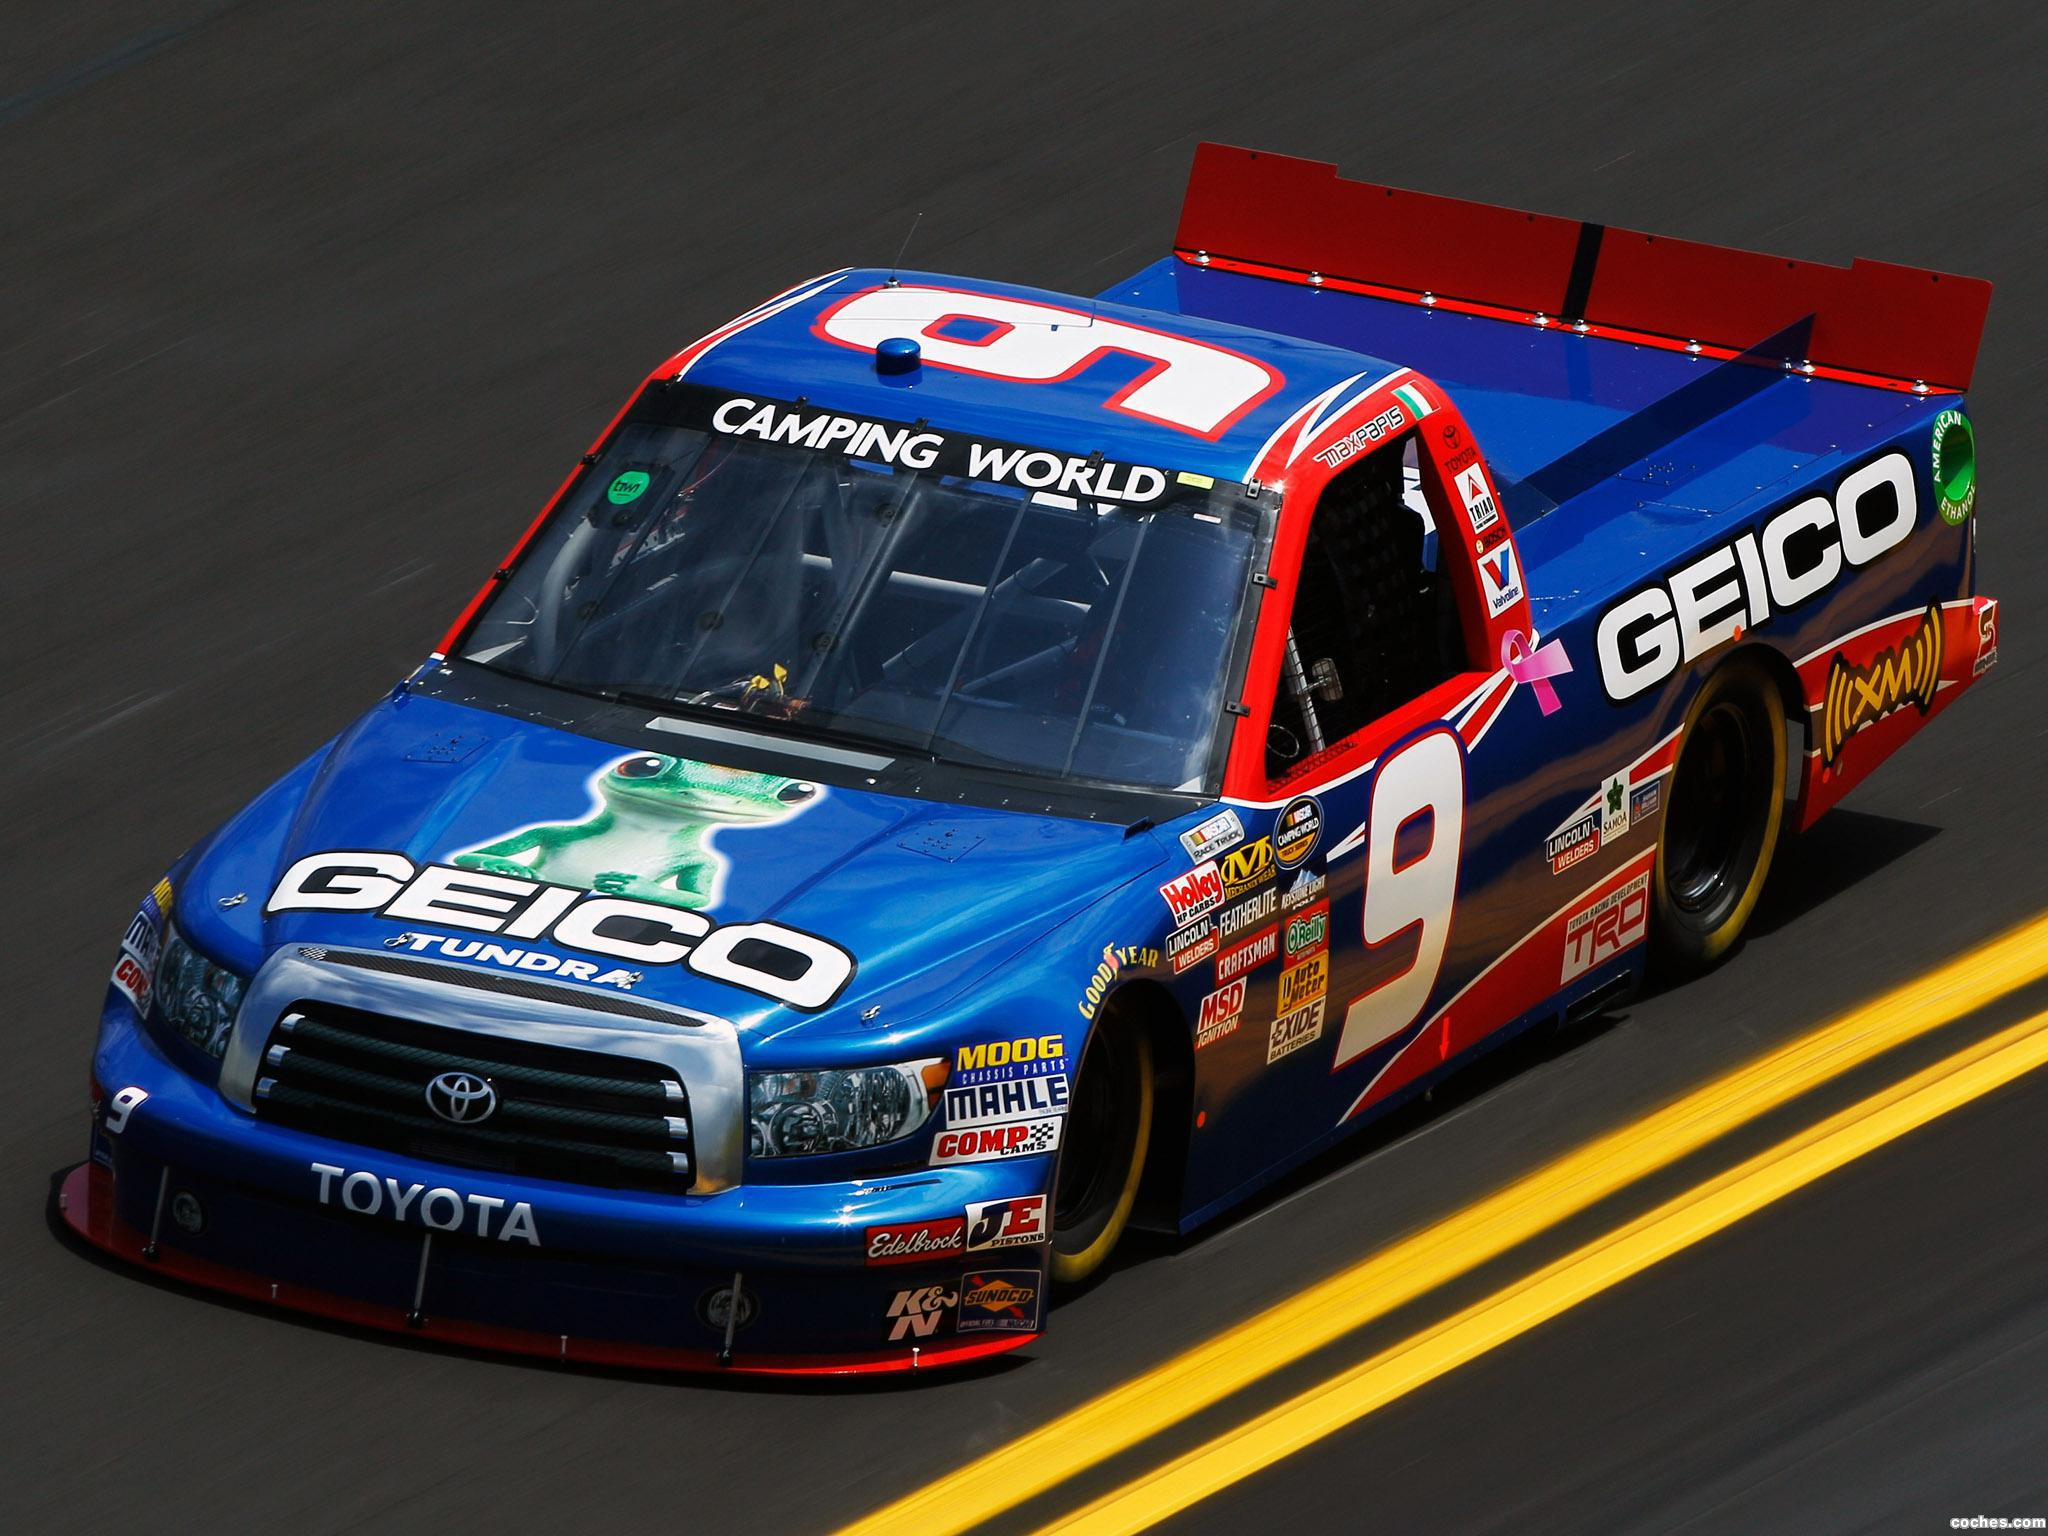 Foto 0 de Toyota Tundra Nascar Camping World Series Truck 2009